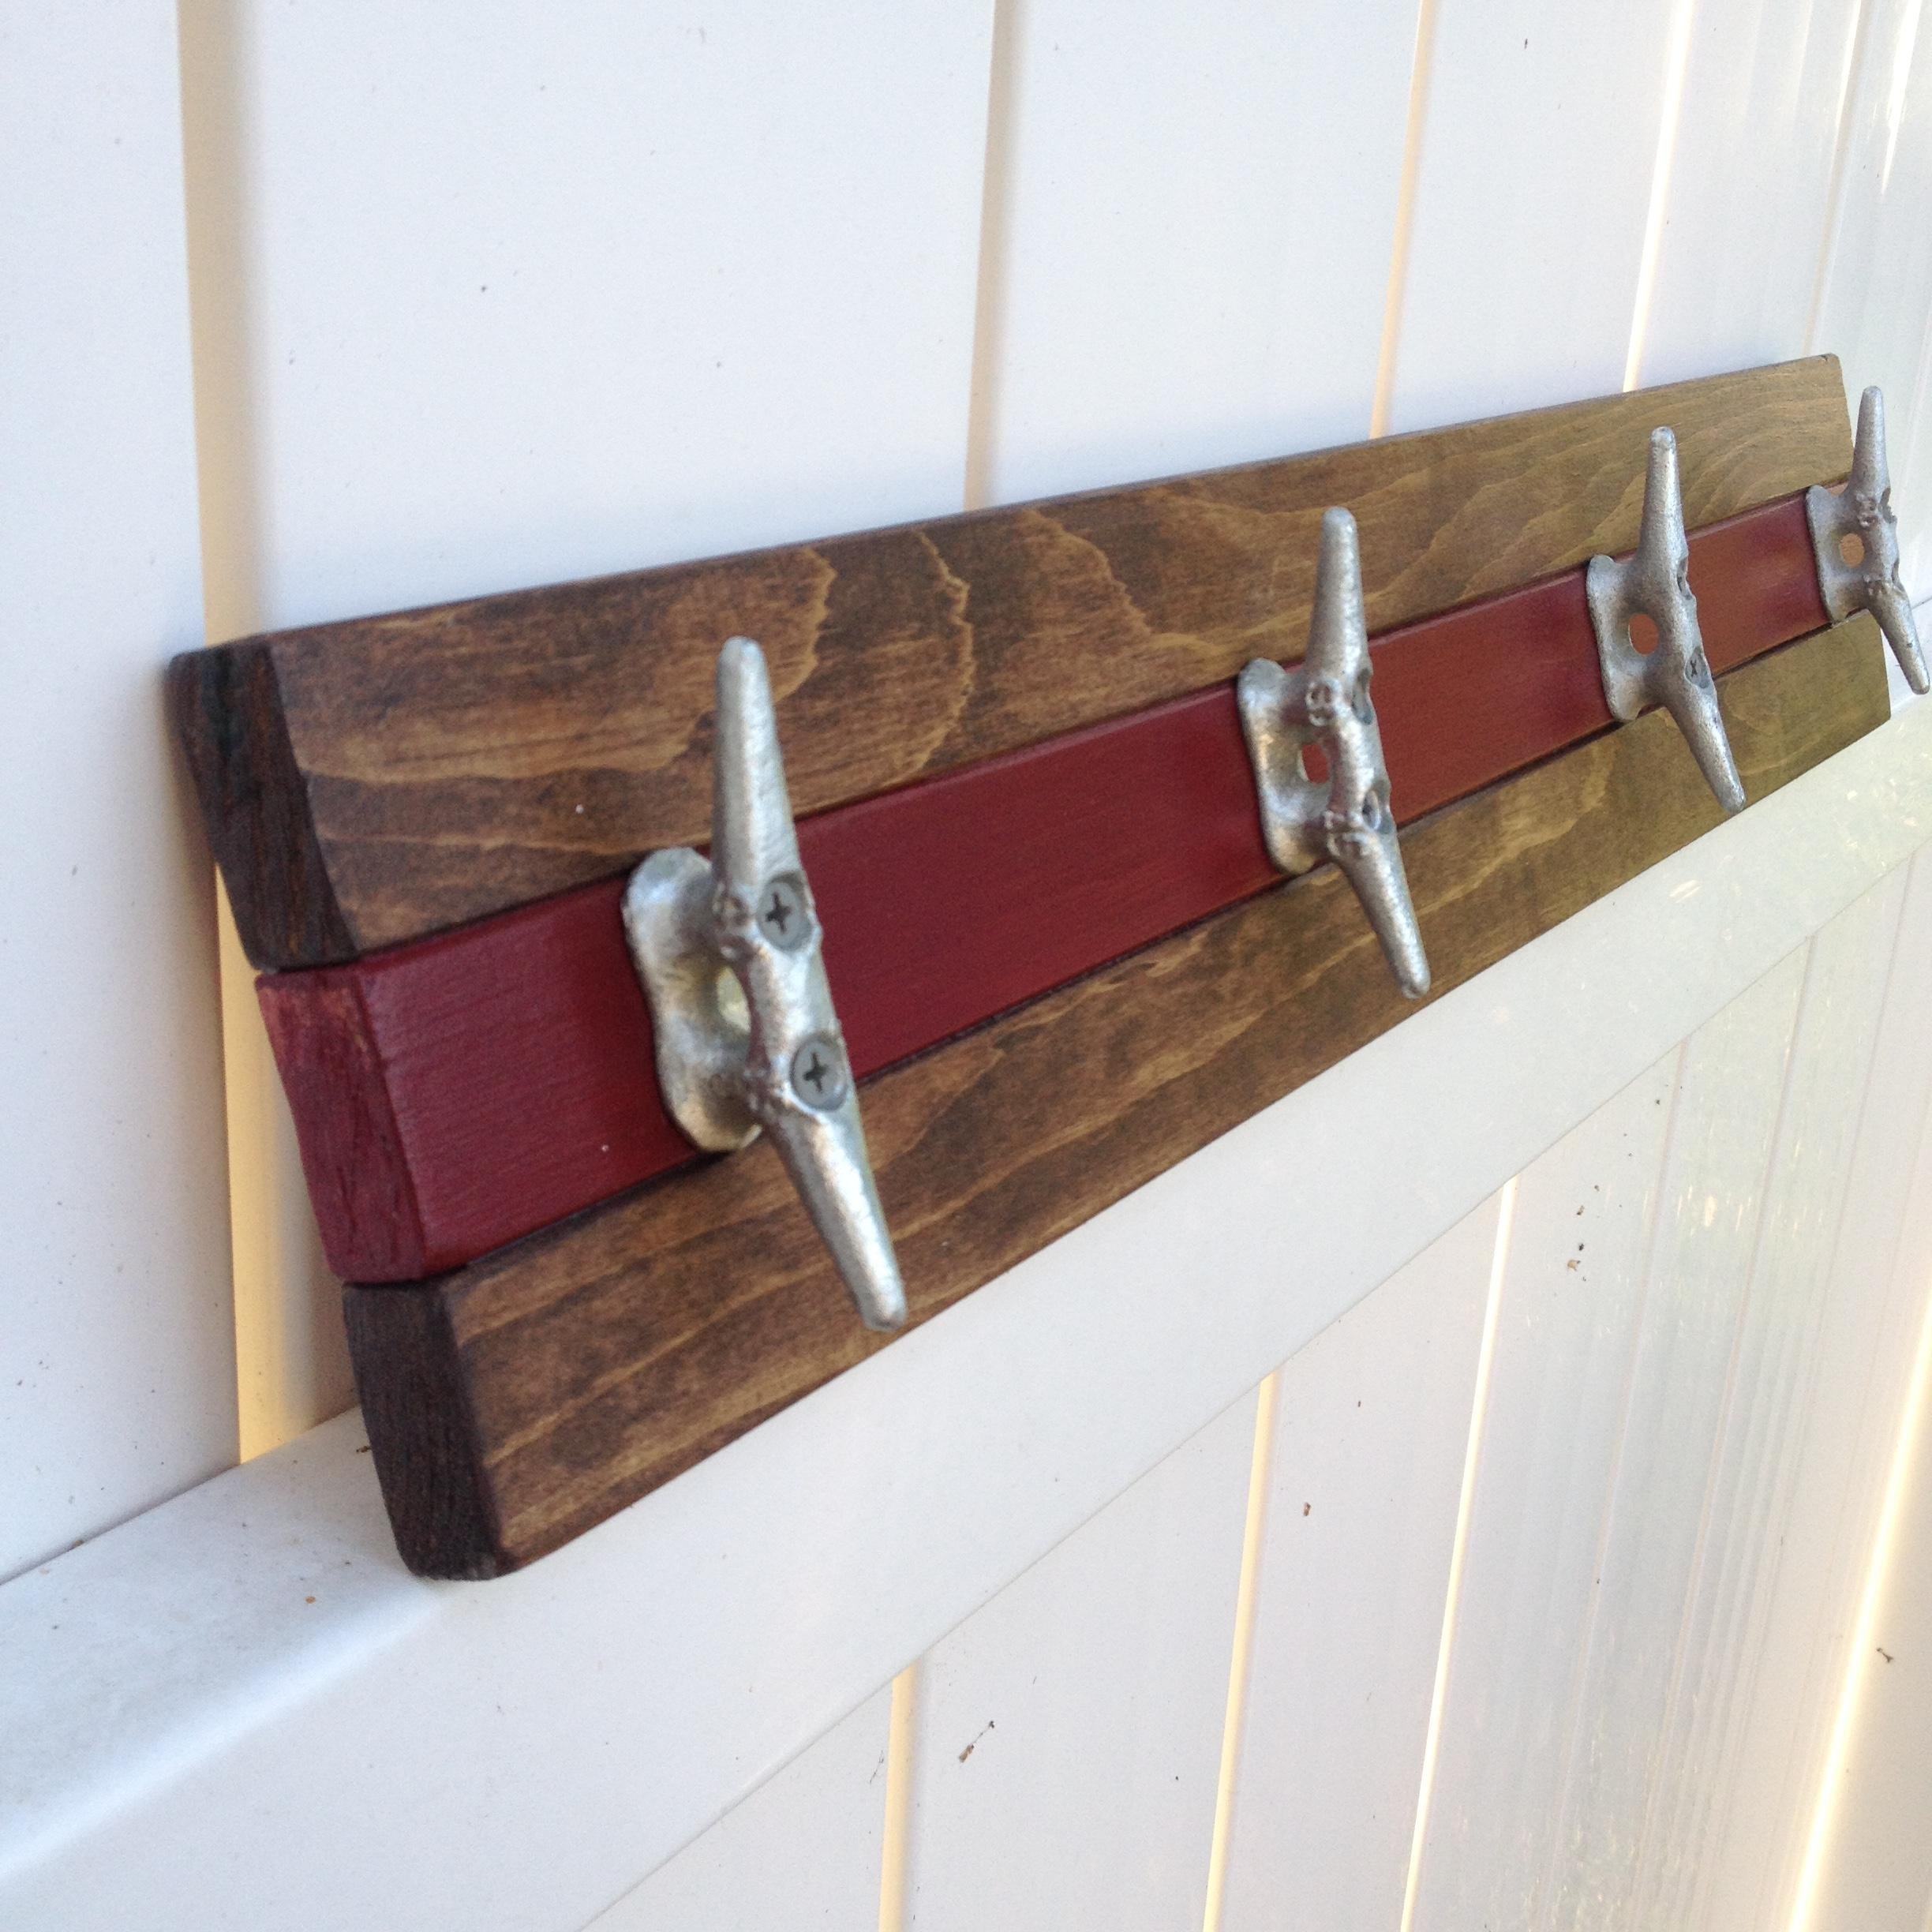 Nautical Boat Cleat Towel Rack, Walnut and Red